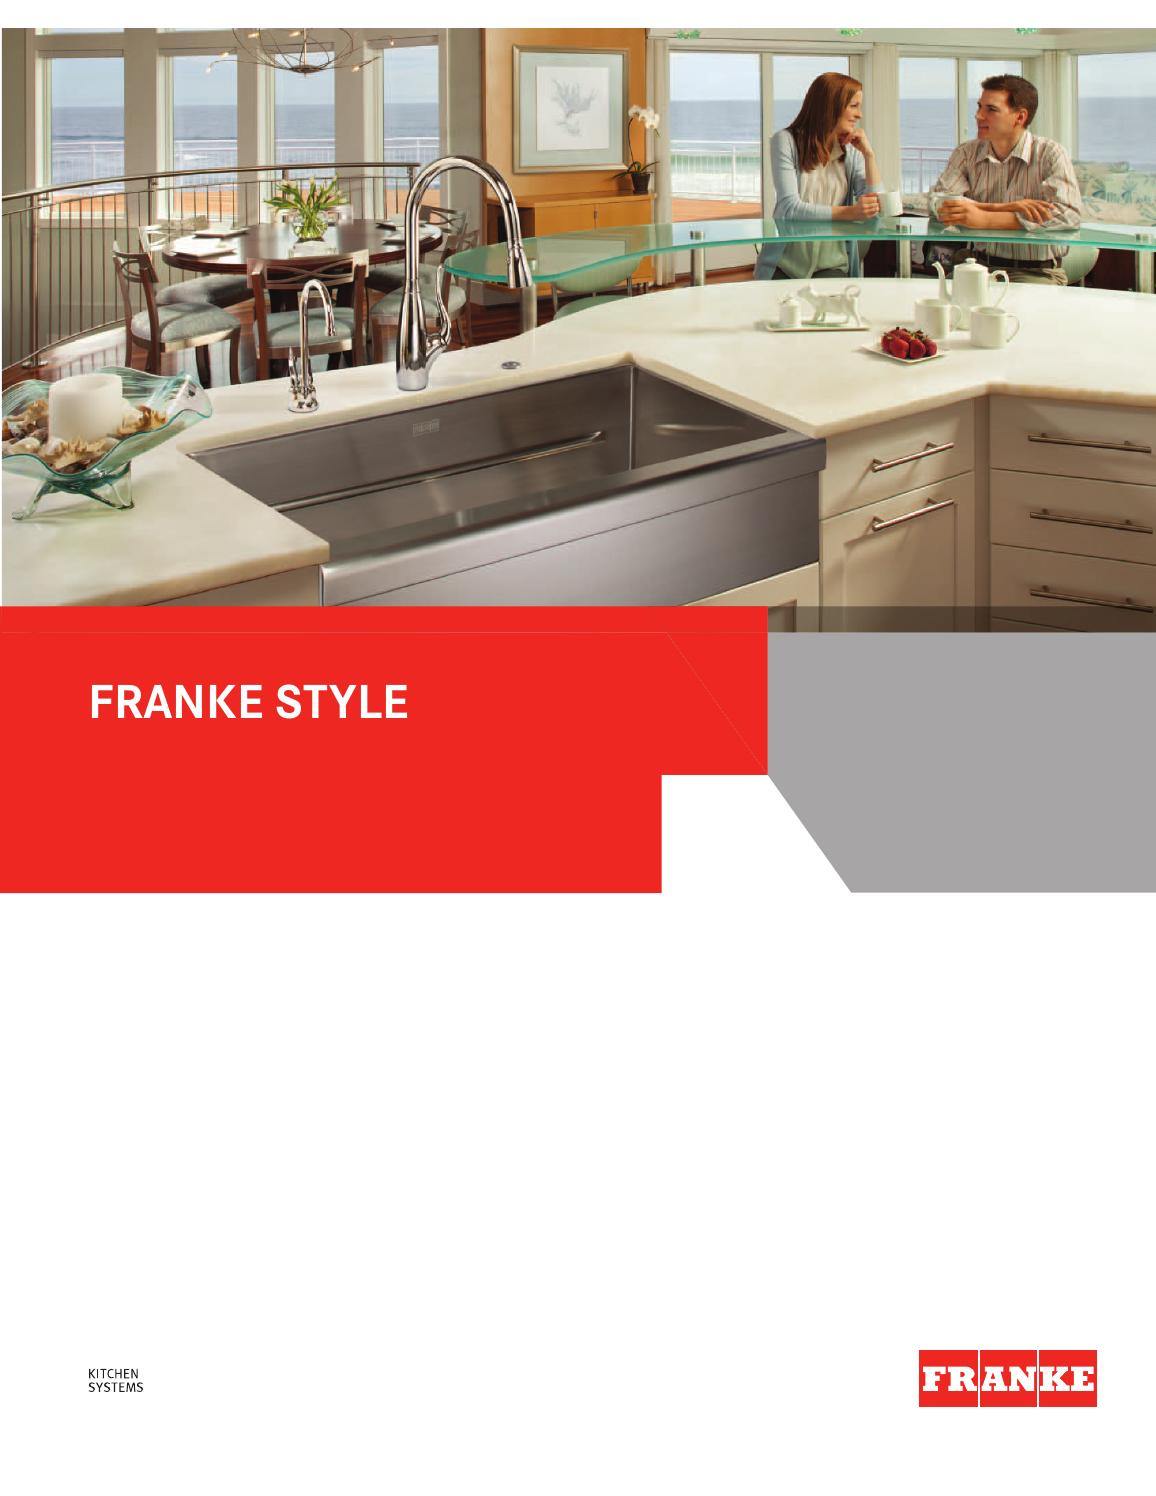 franke kitchen systems us luxury catalog 2014 by franke. Black Bedroom Furniture Sets. Home Design Ideas